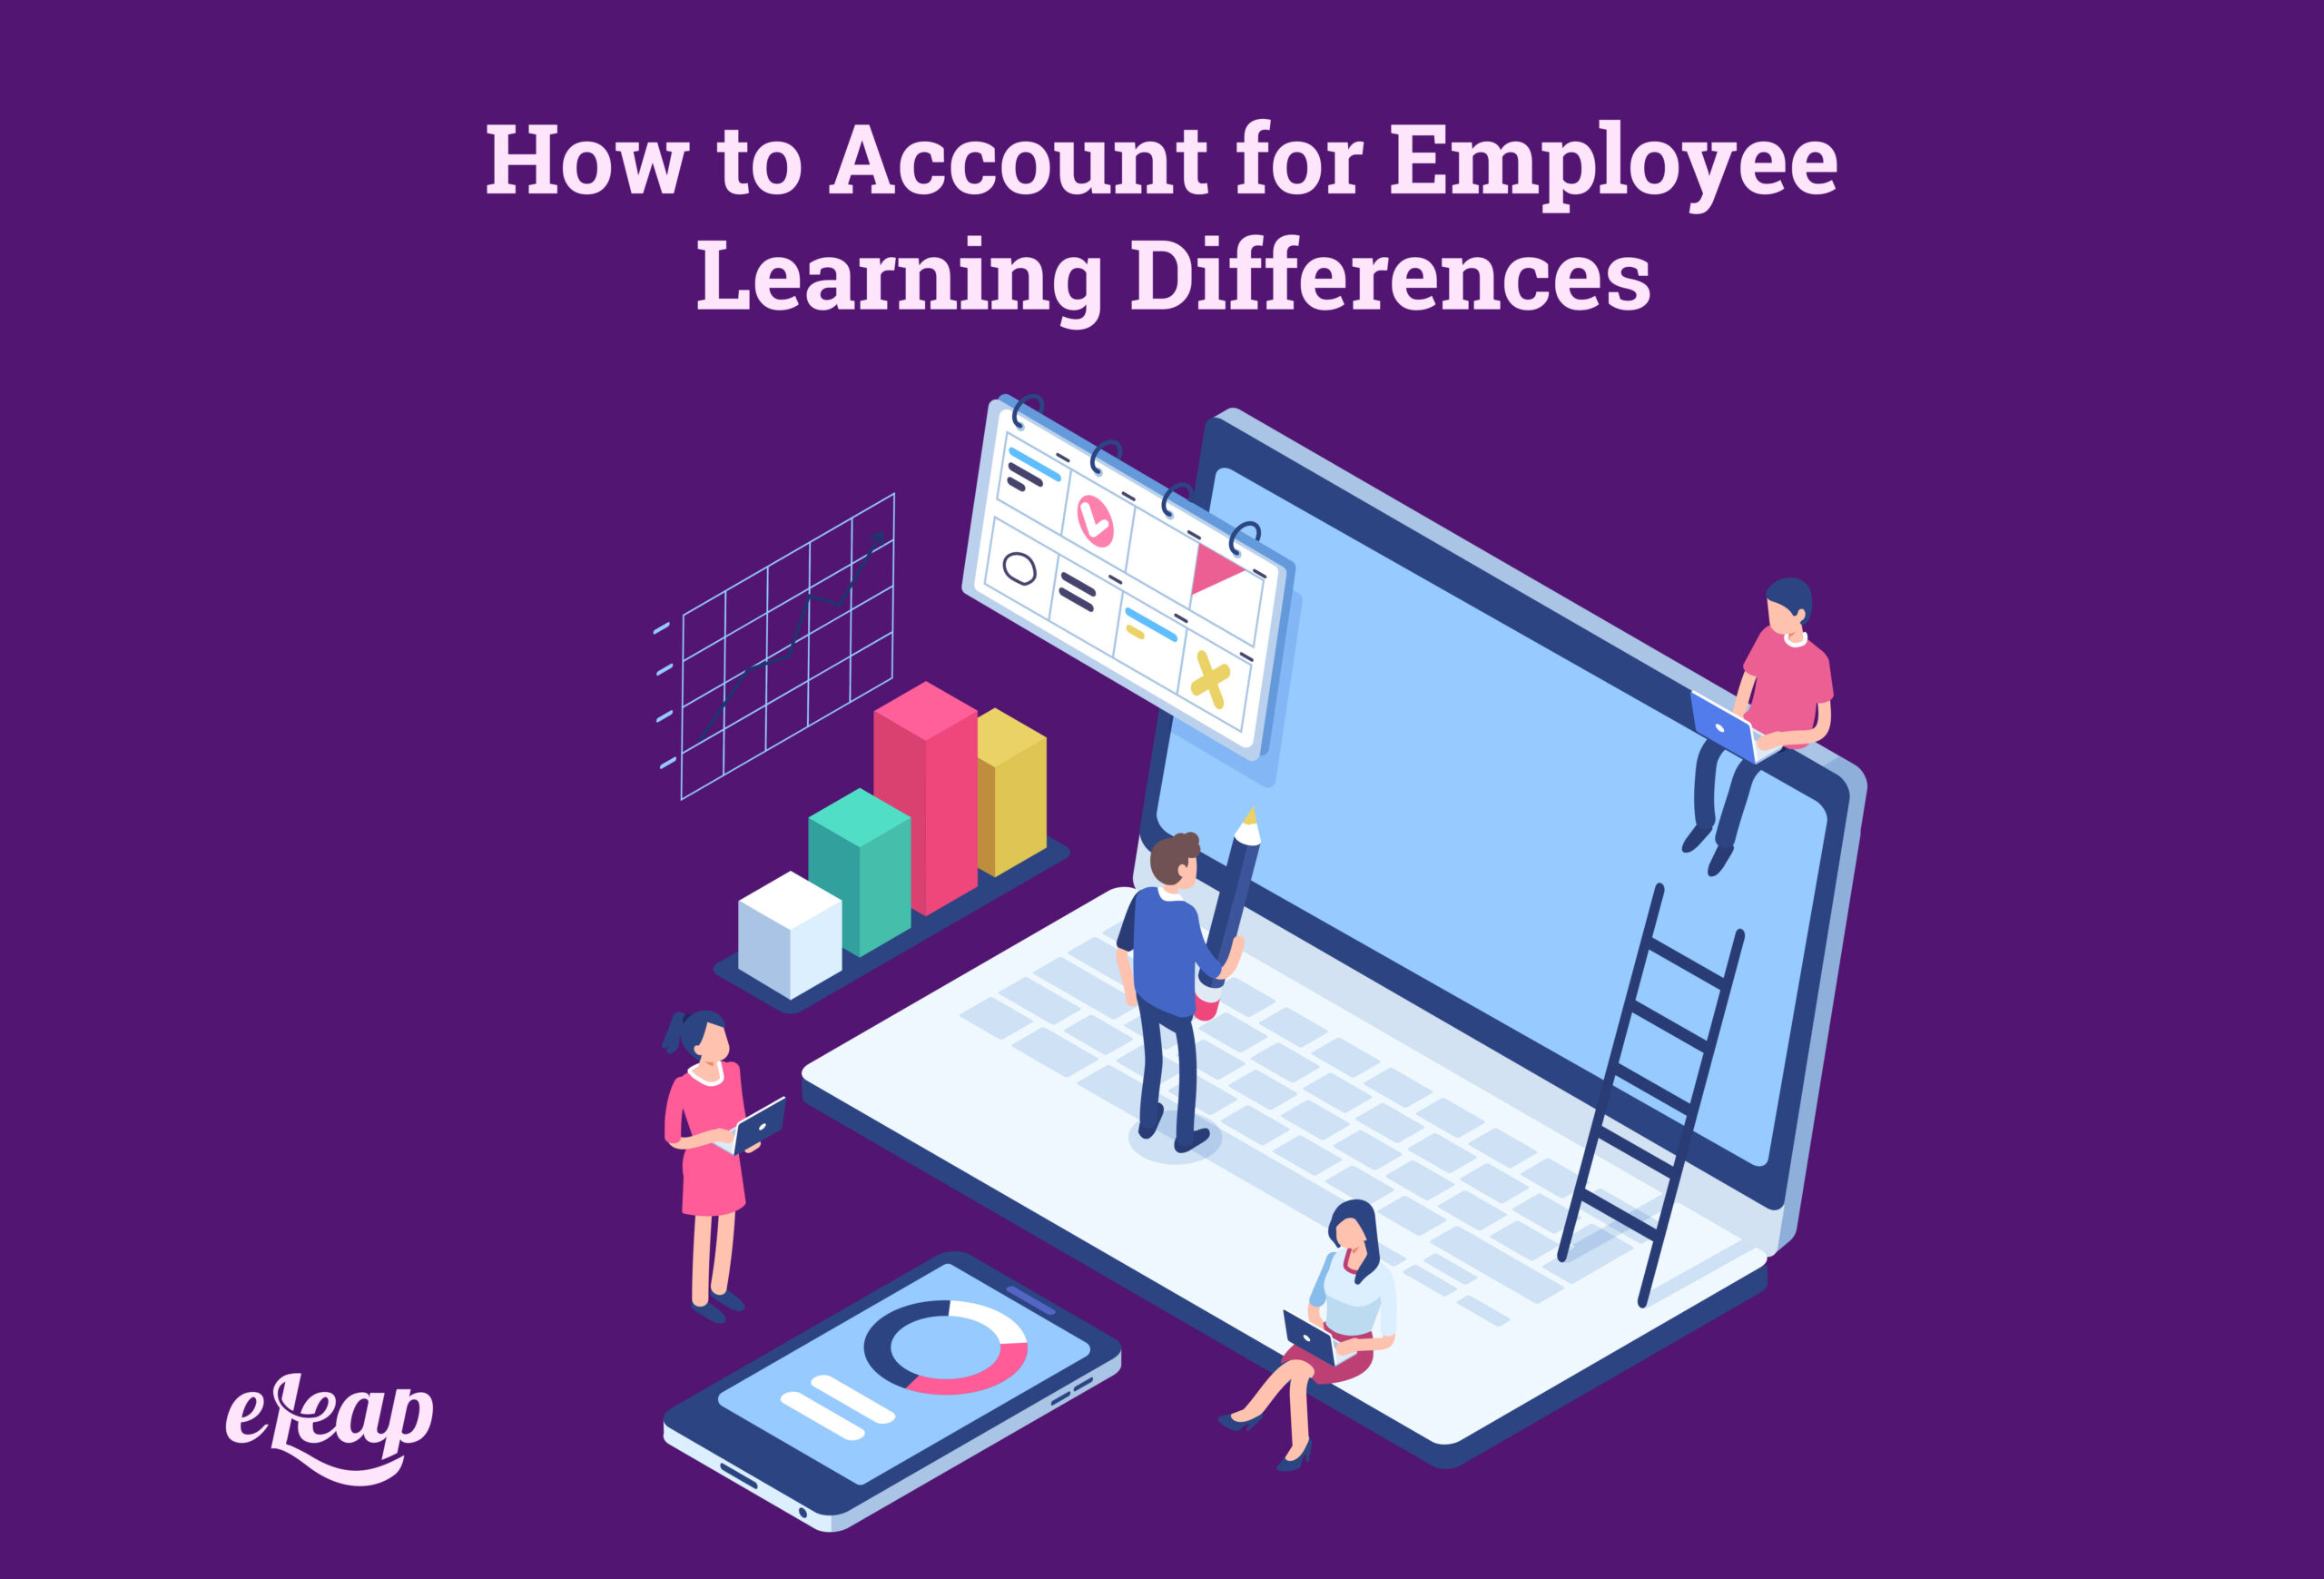 How to Account for Employee Learning Differences